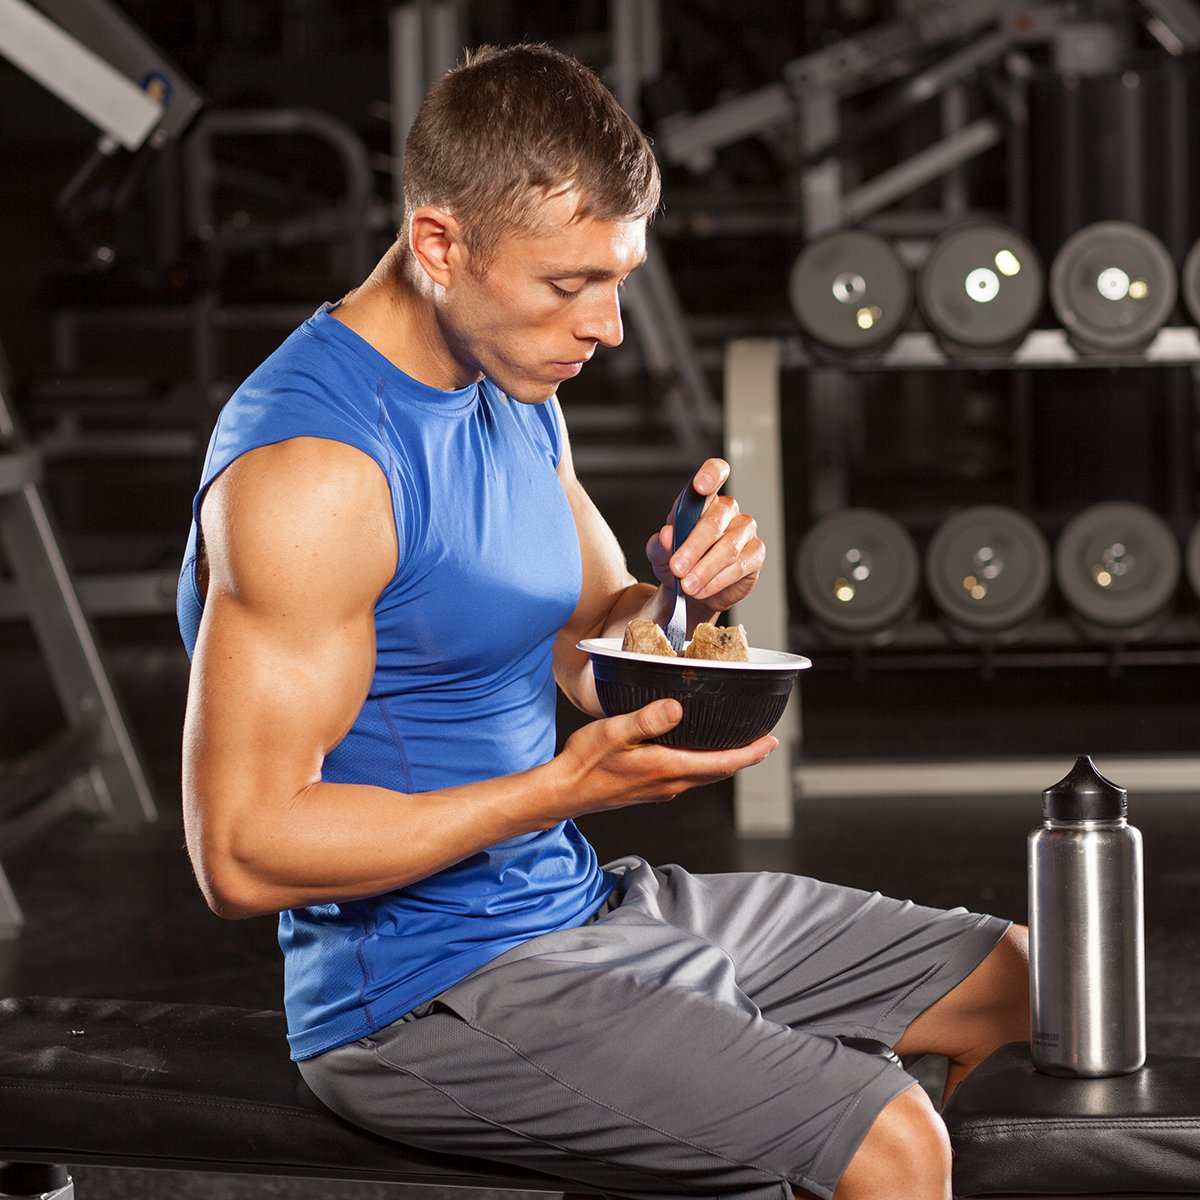 Your 4-Step Nutritional Gainz Plan